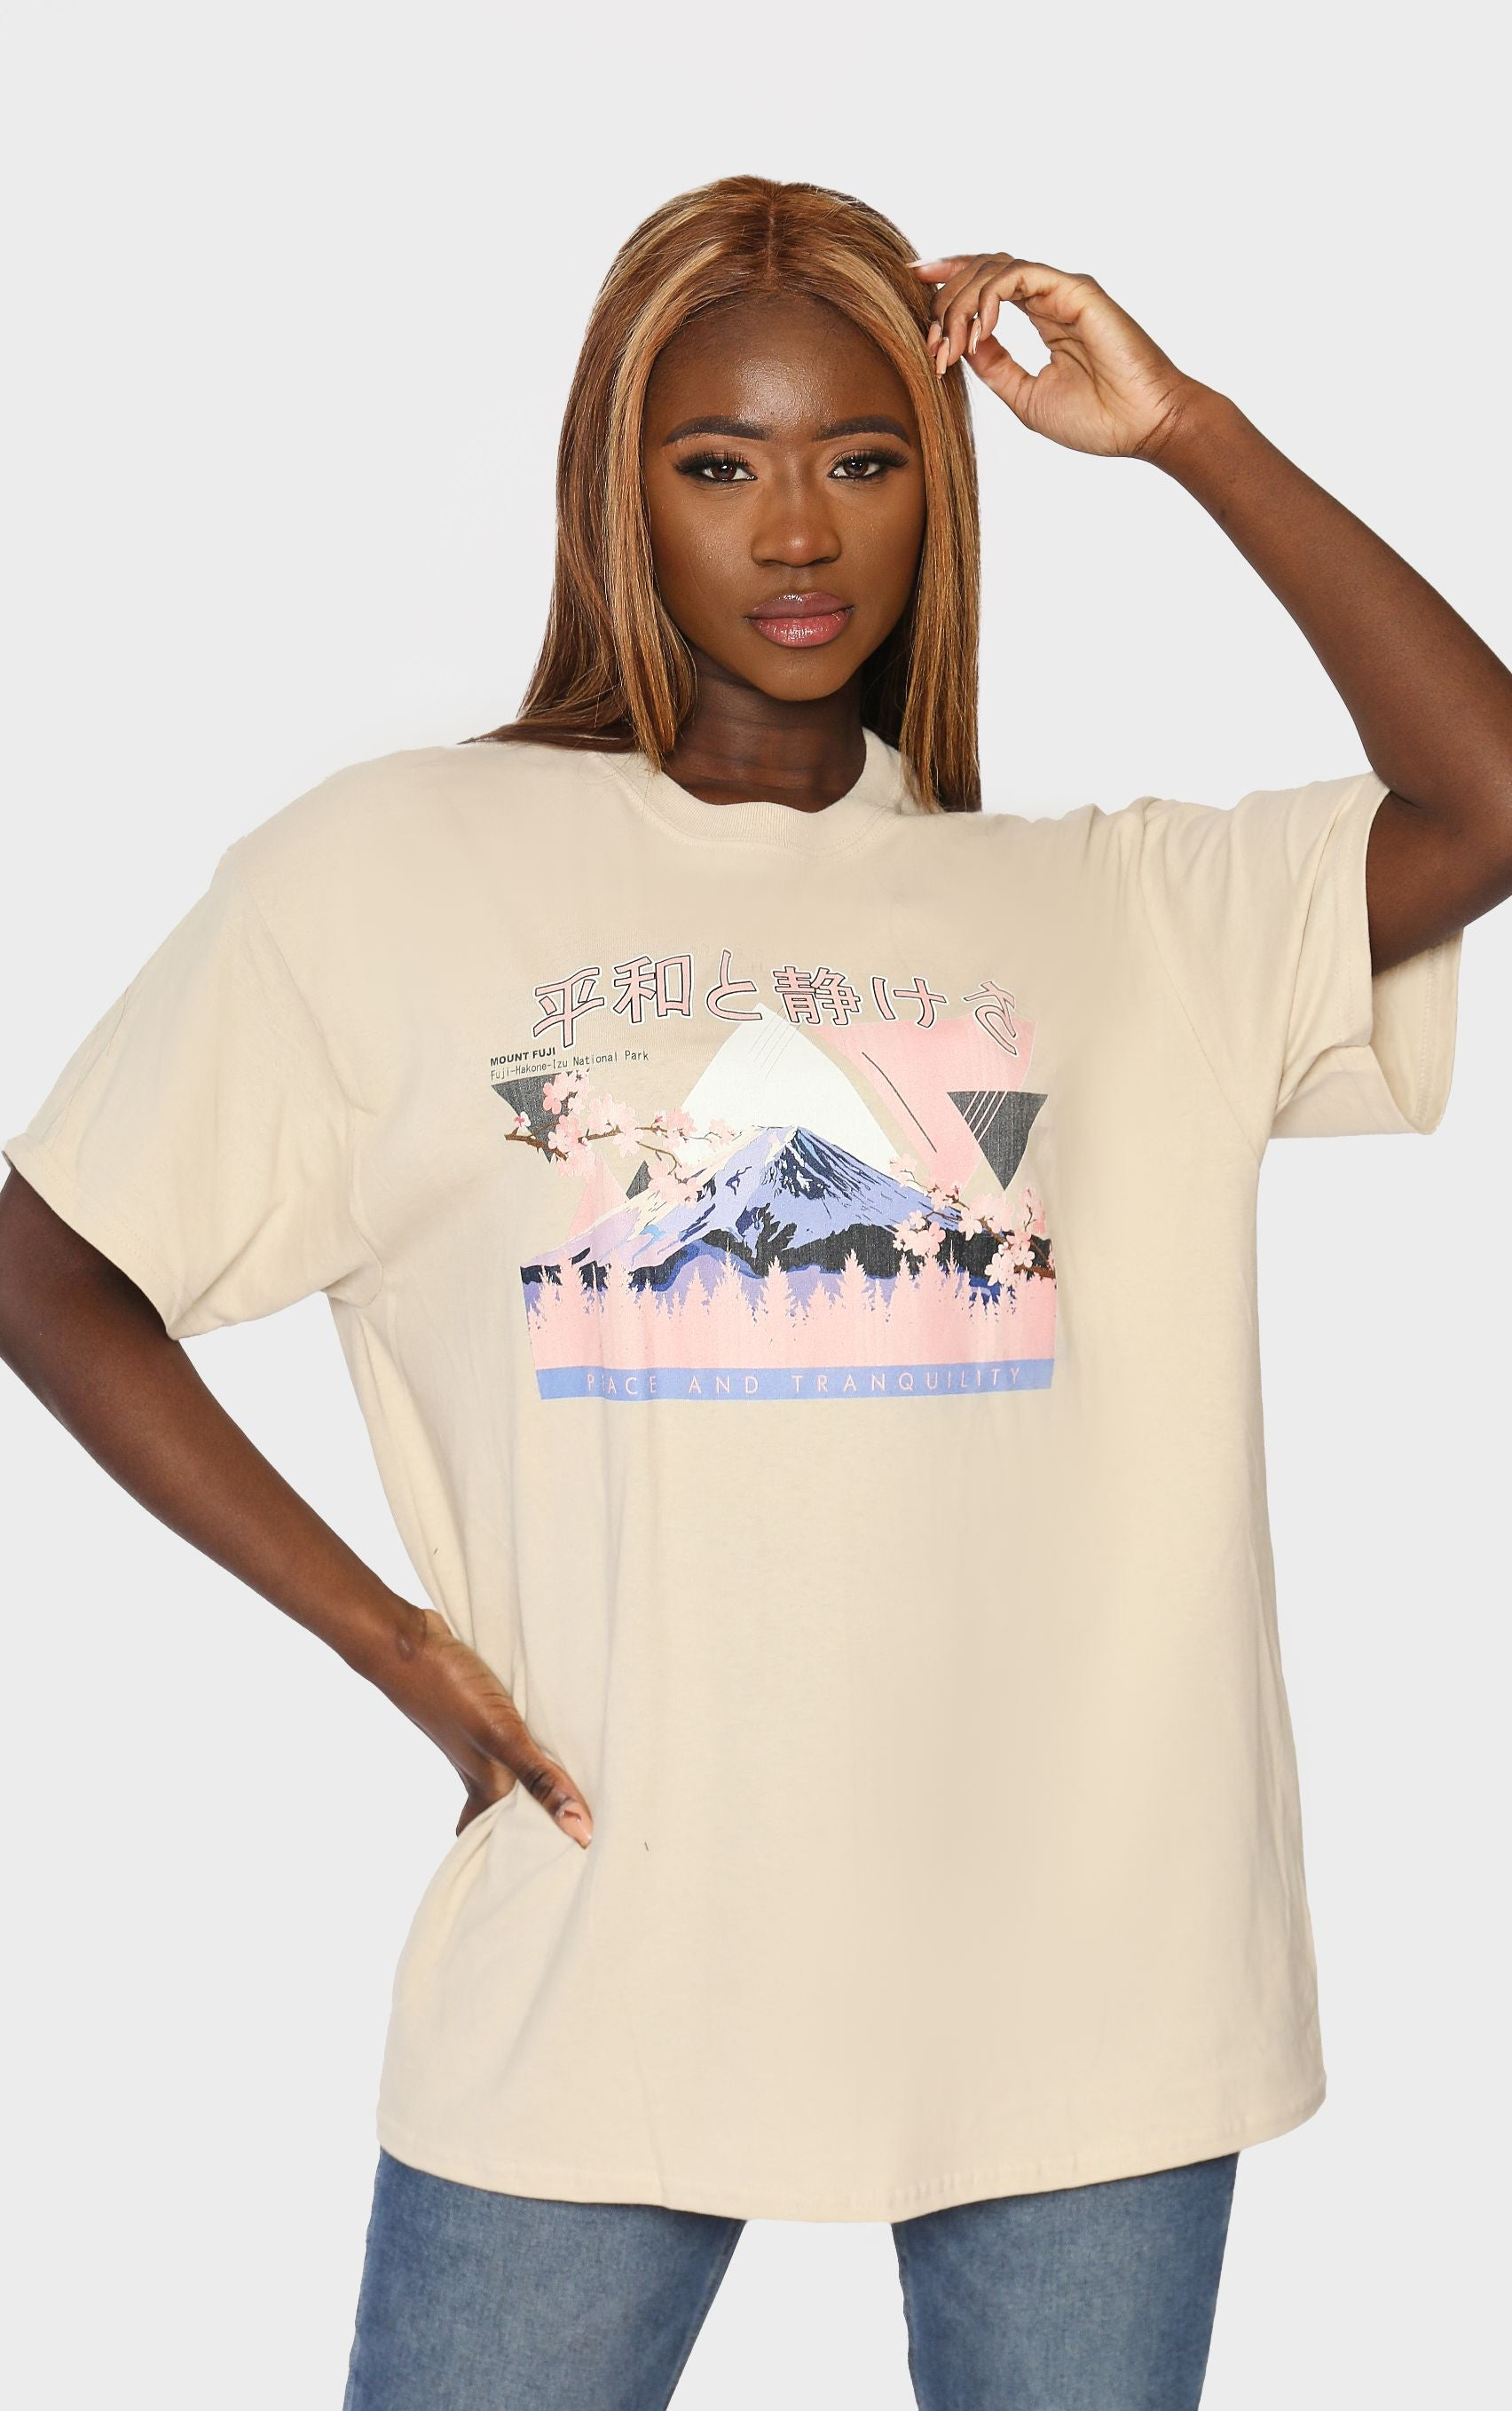 Mount Fuji Peace and Tranquility Sand T-Shirt